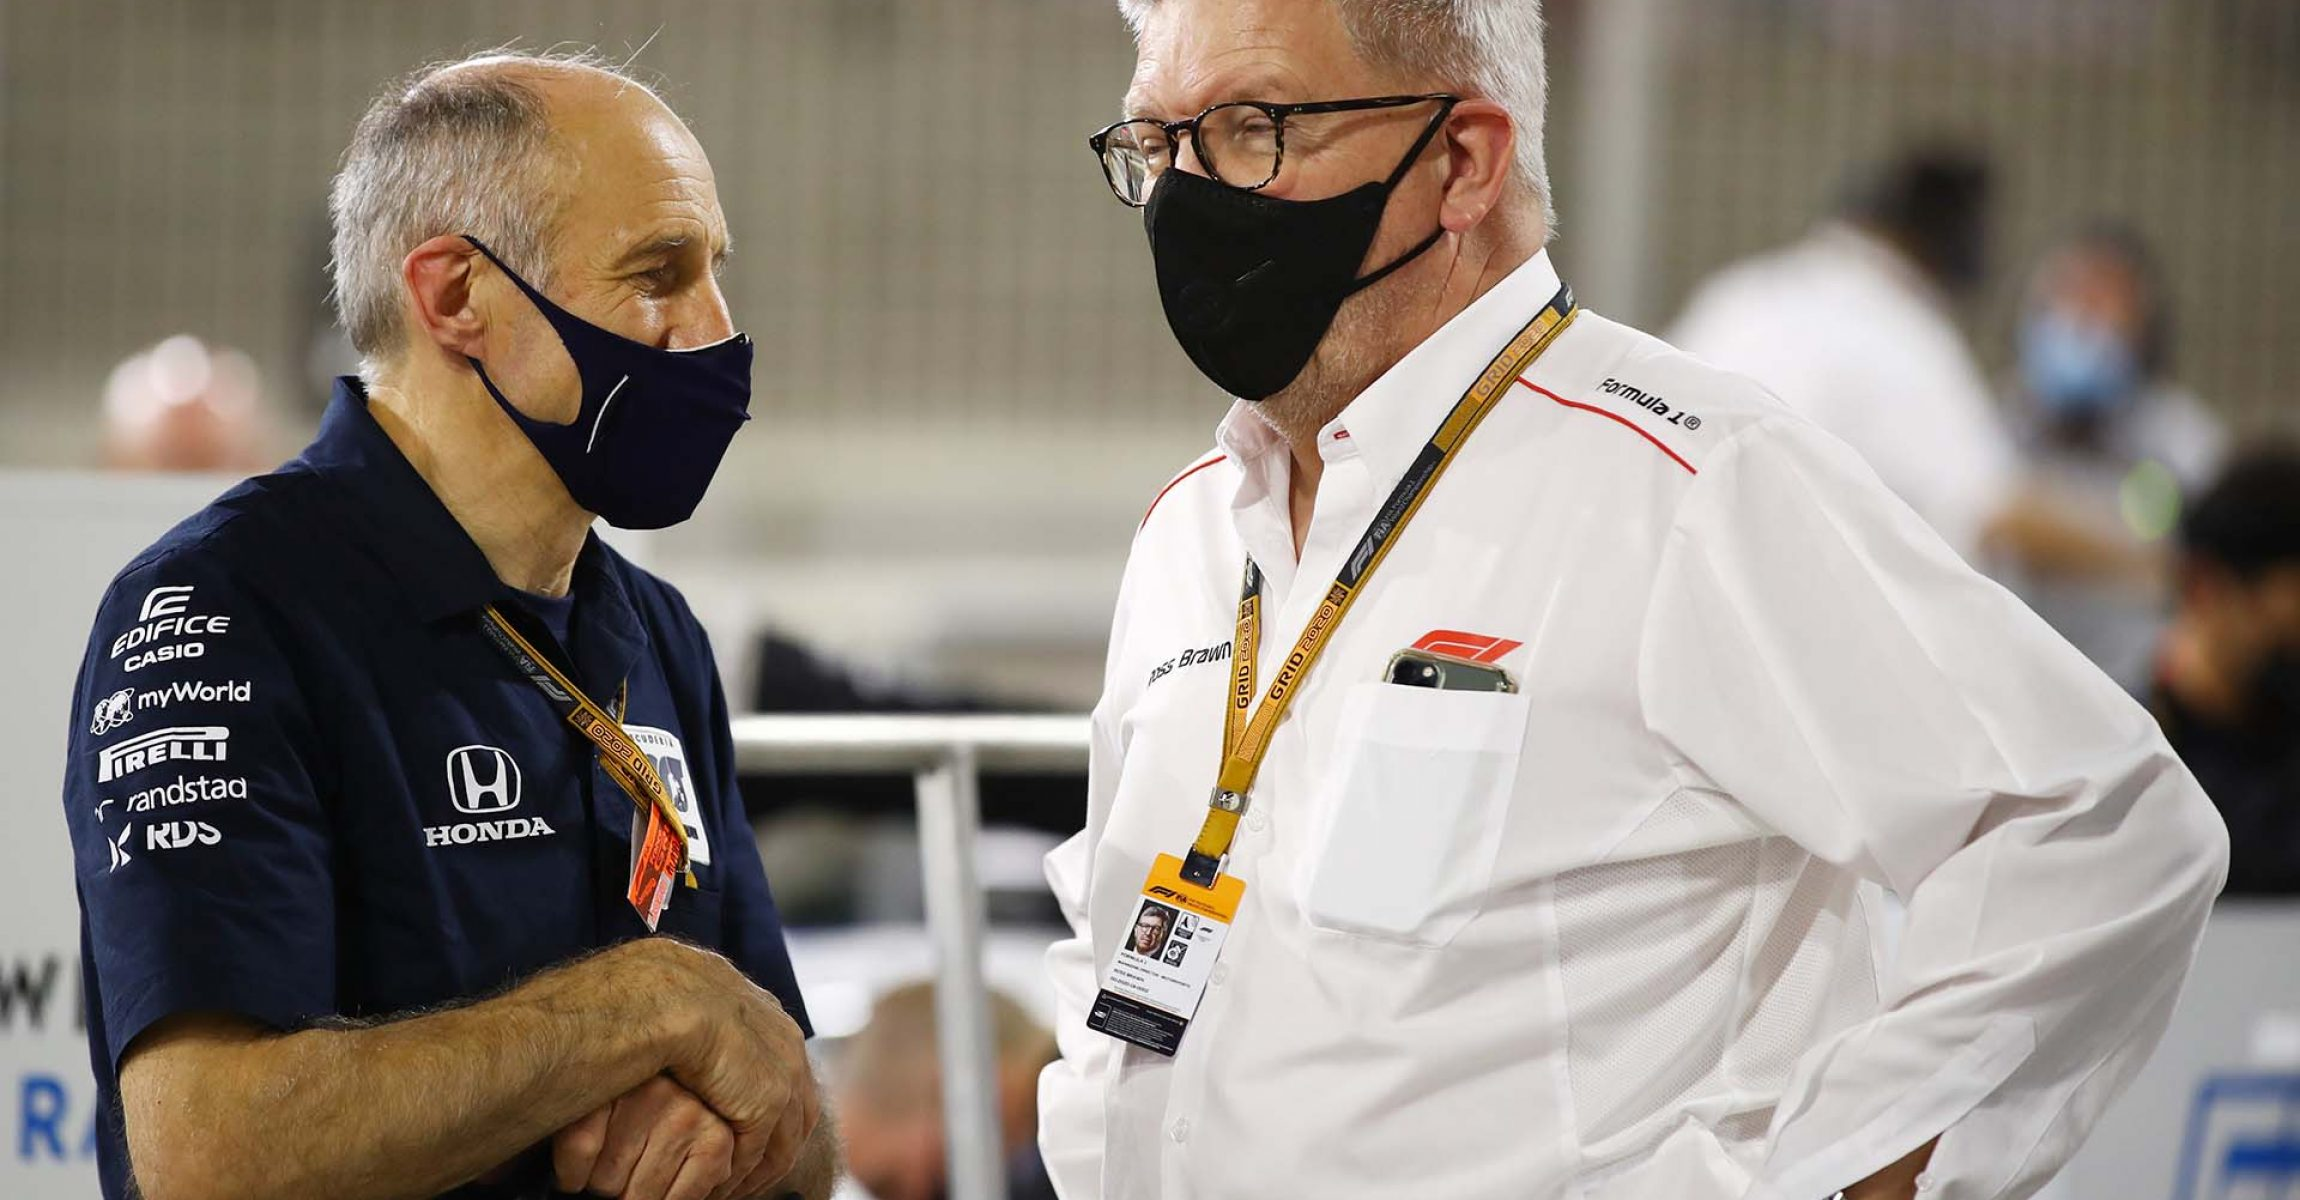 BAHRAIN, BAHRAIN - NOVEMBER 29: Scuderia AlphaTauri Team Principal Franz Tost and Ross Brawn, Managing Director (Sporting) of the Formula One Group, talk during the F1 Grand Prix of Bahrain at Bahrain International Circuit on November 29, 2020 in Bahrain, Bahrain. (Photo by Mark Thompson/Getty Images)